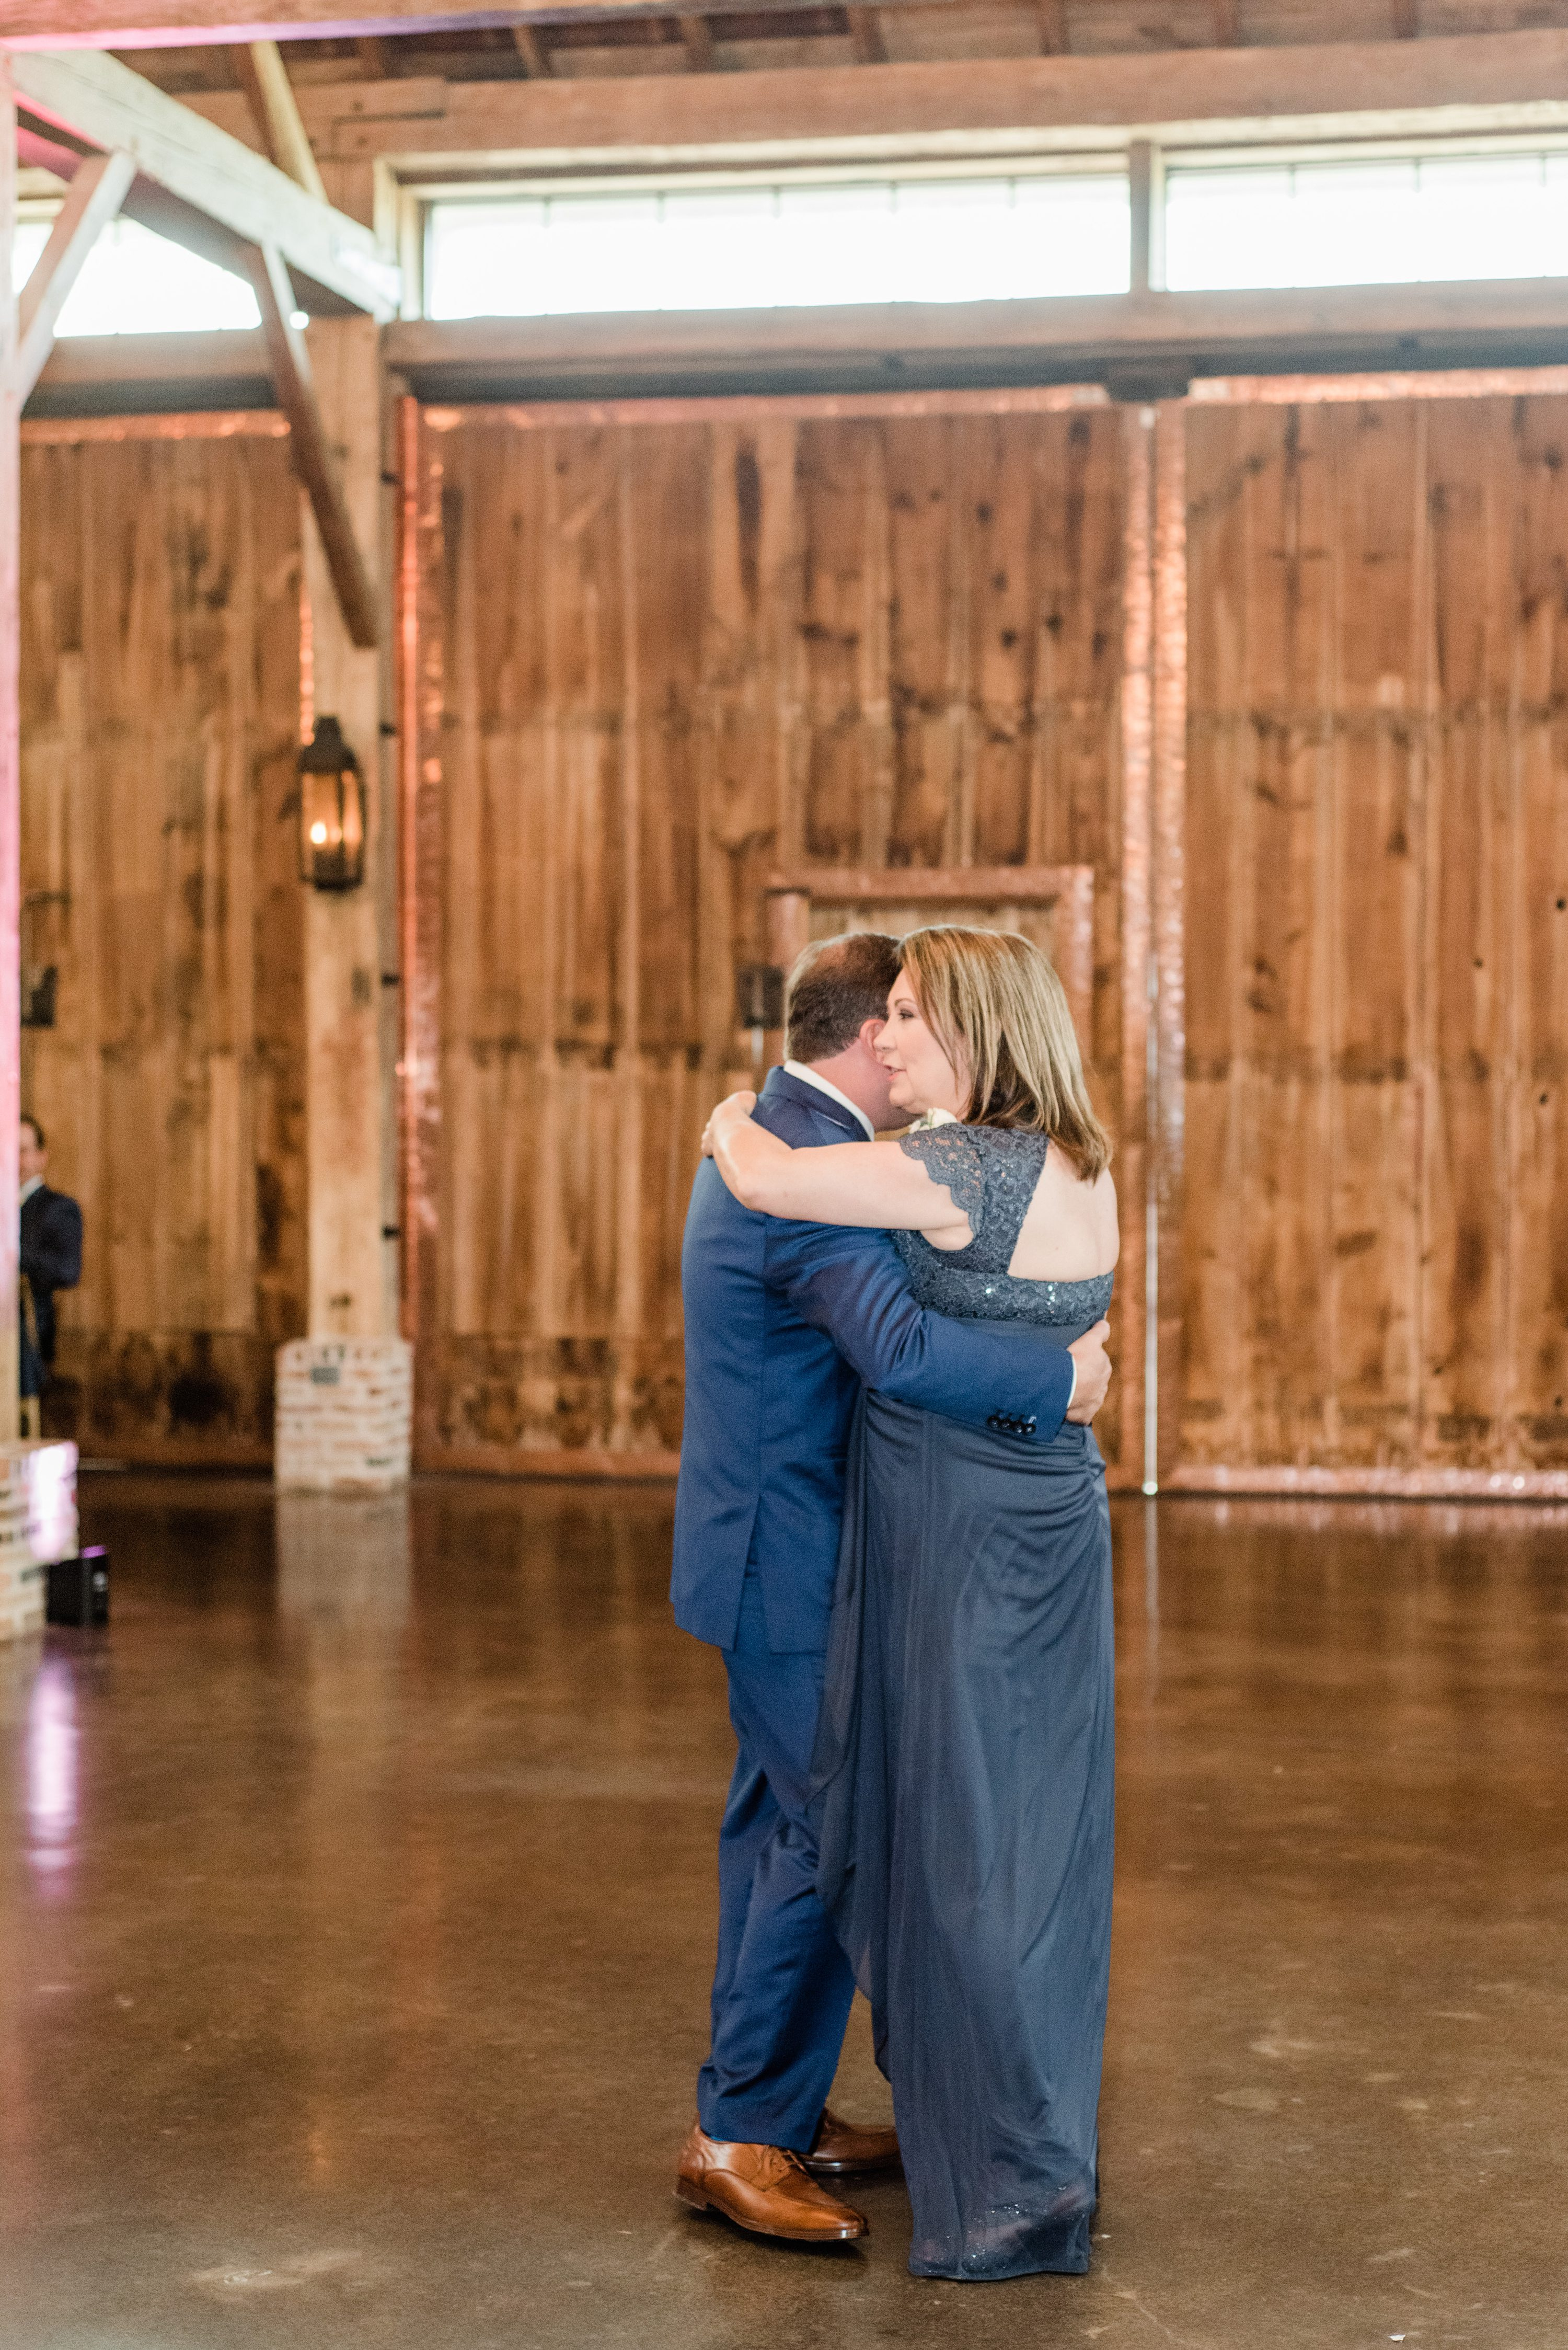 and we loved the way the decorated the barn with tons of greenery and a neutral color palette. They ended the wedding with a fun sparkler exit surrounded by their family and friends, especially when Travis cried seeing his bride for the first time. Their reception decor was absolutely stunning